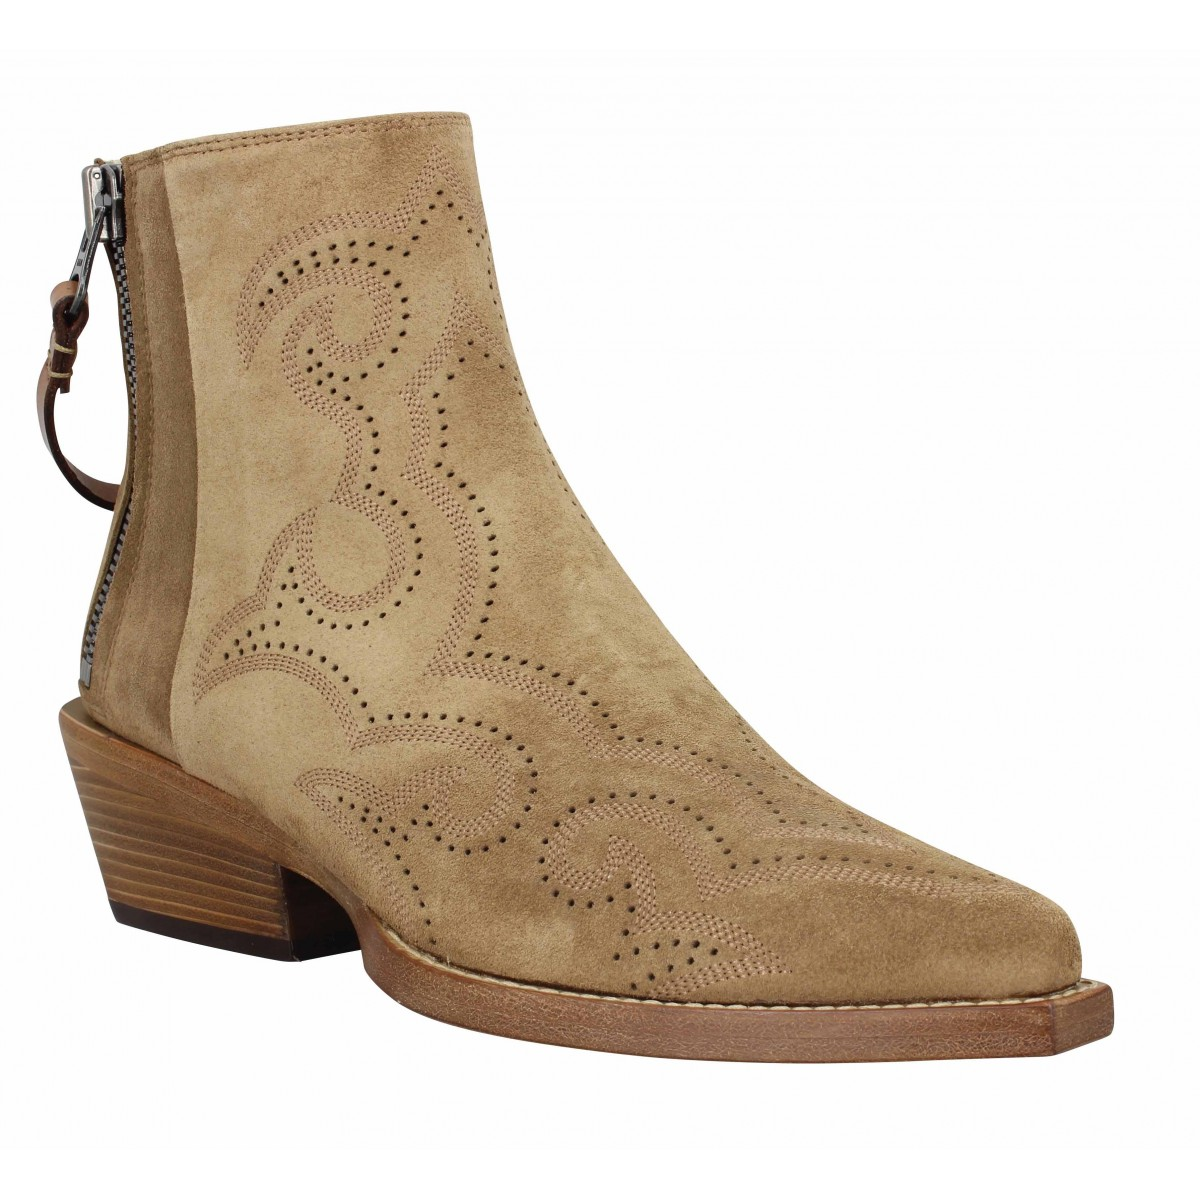 Bottines FREE LANCE Calamity 4 West Double Zip Boots velours Femme Cigare